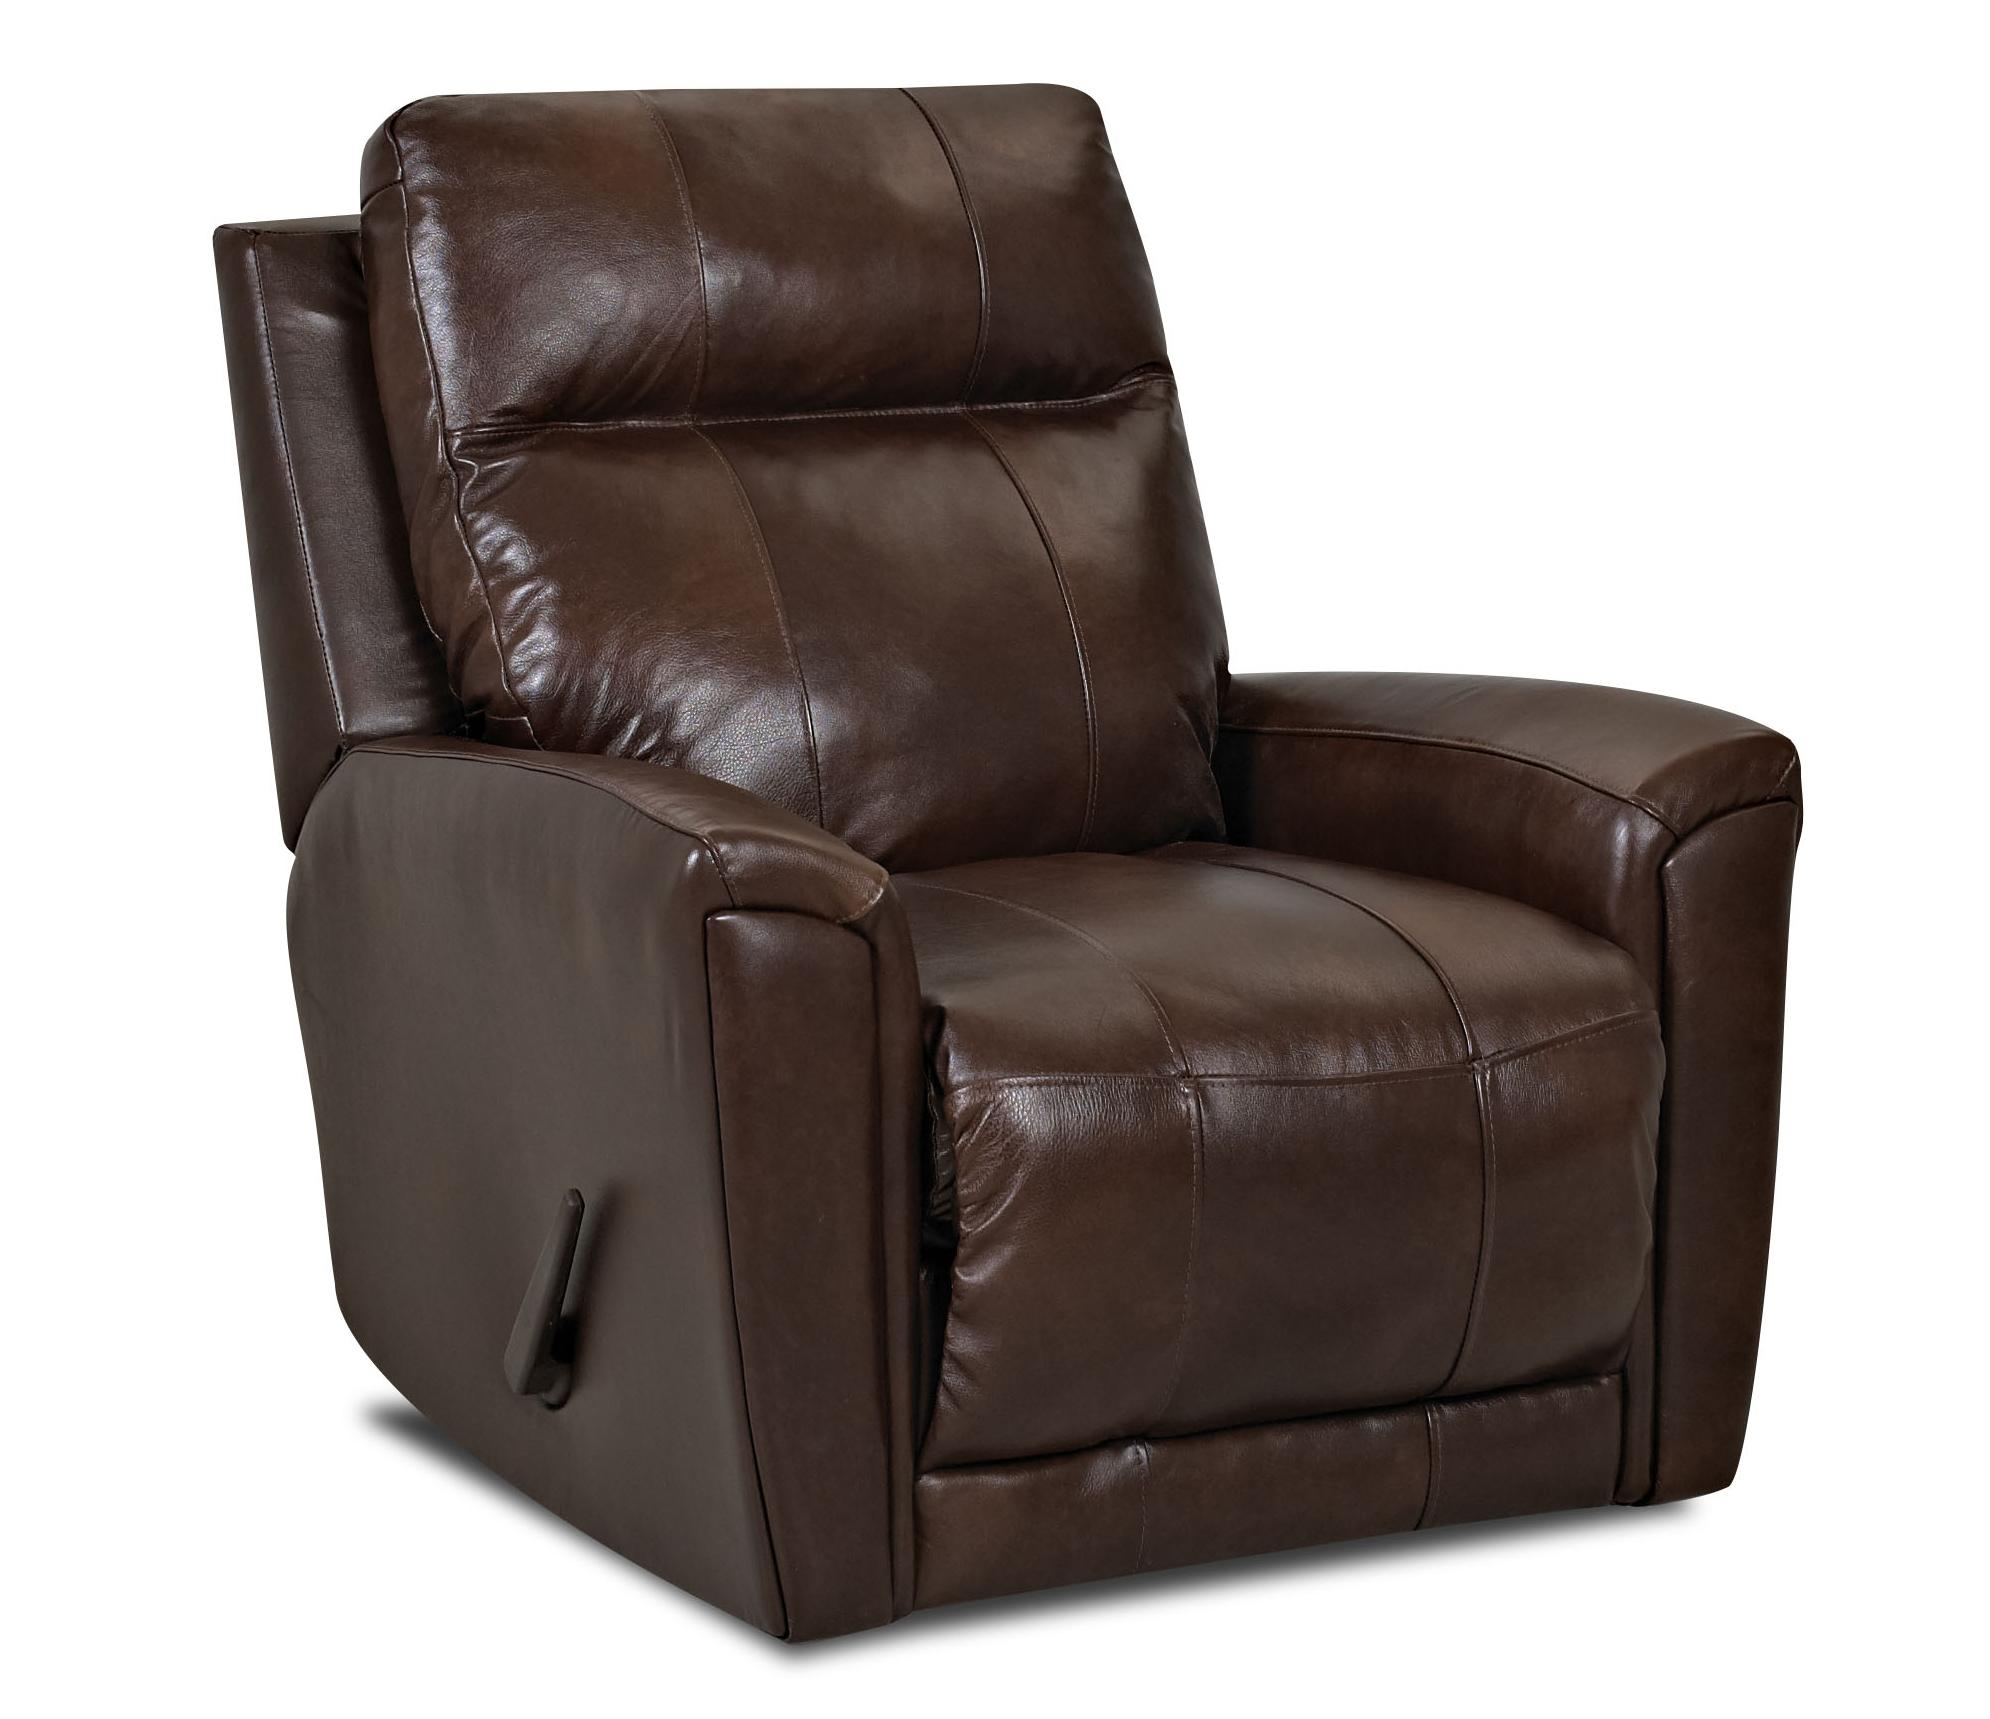 Transitional Swivel Rocking Reclining Chair By Klaussner